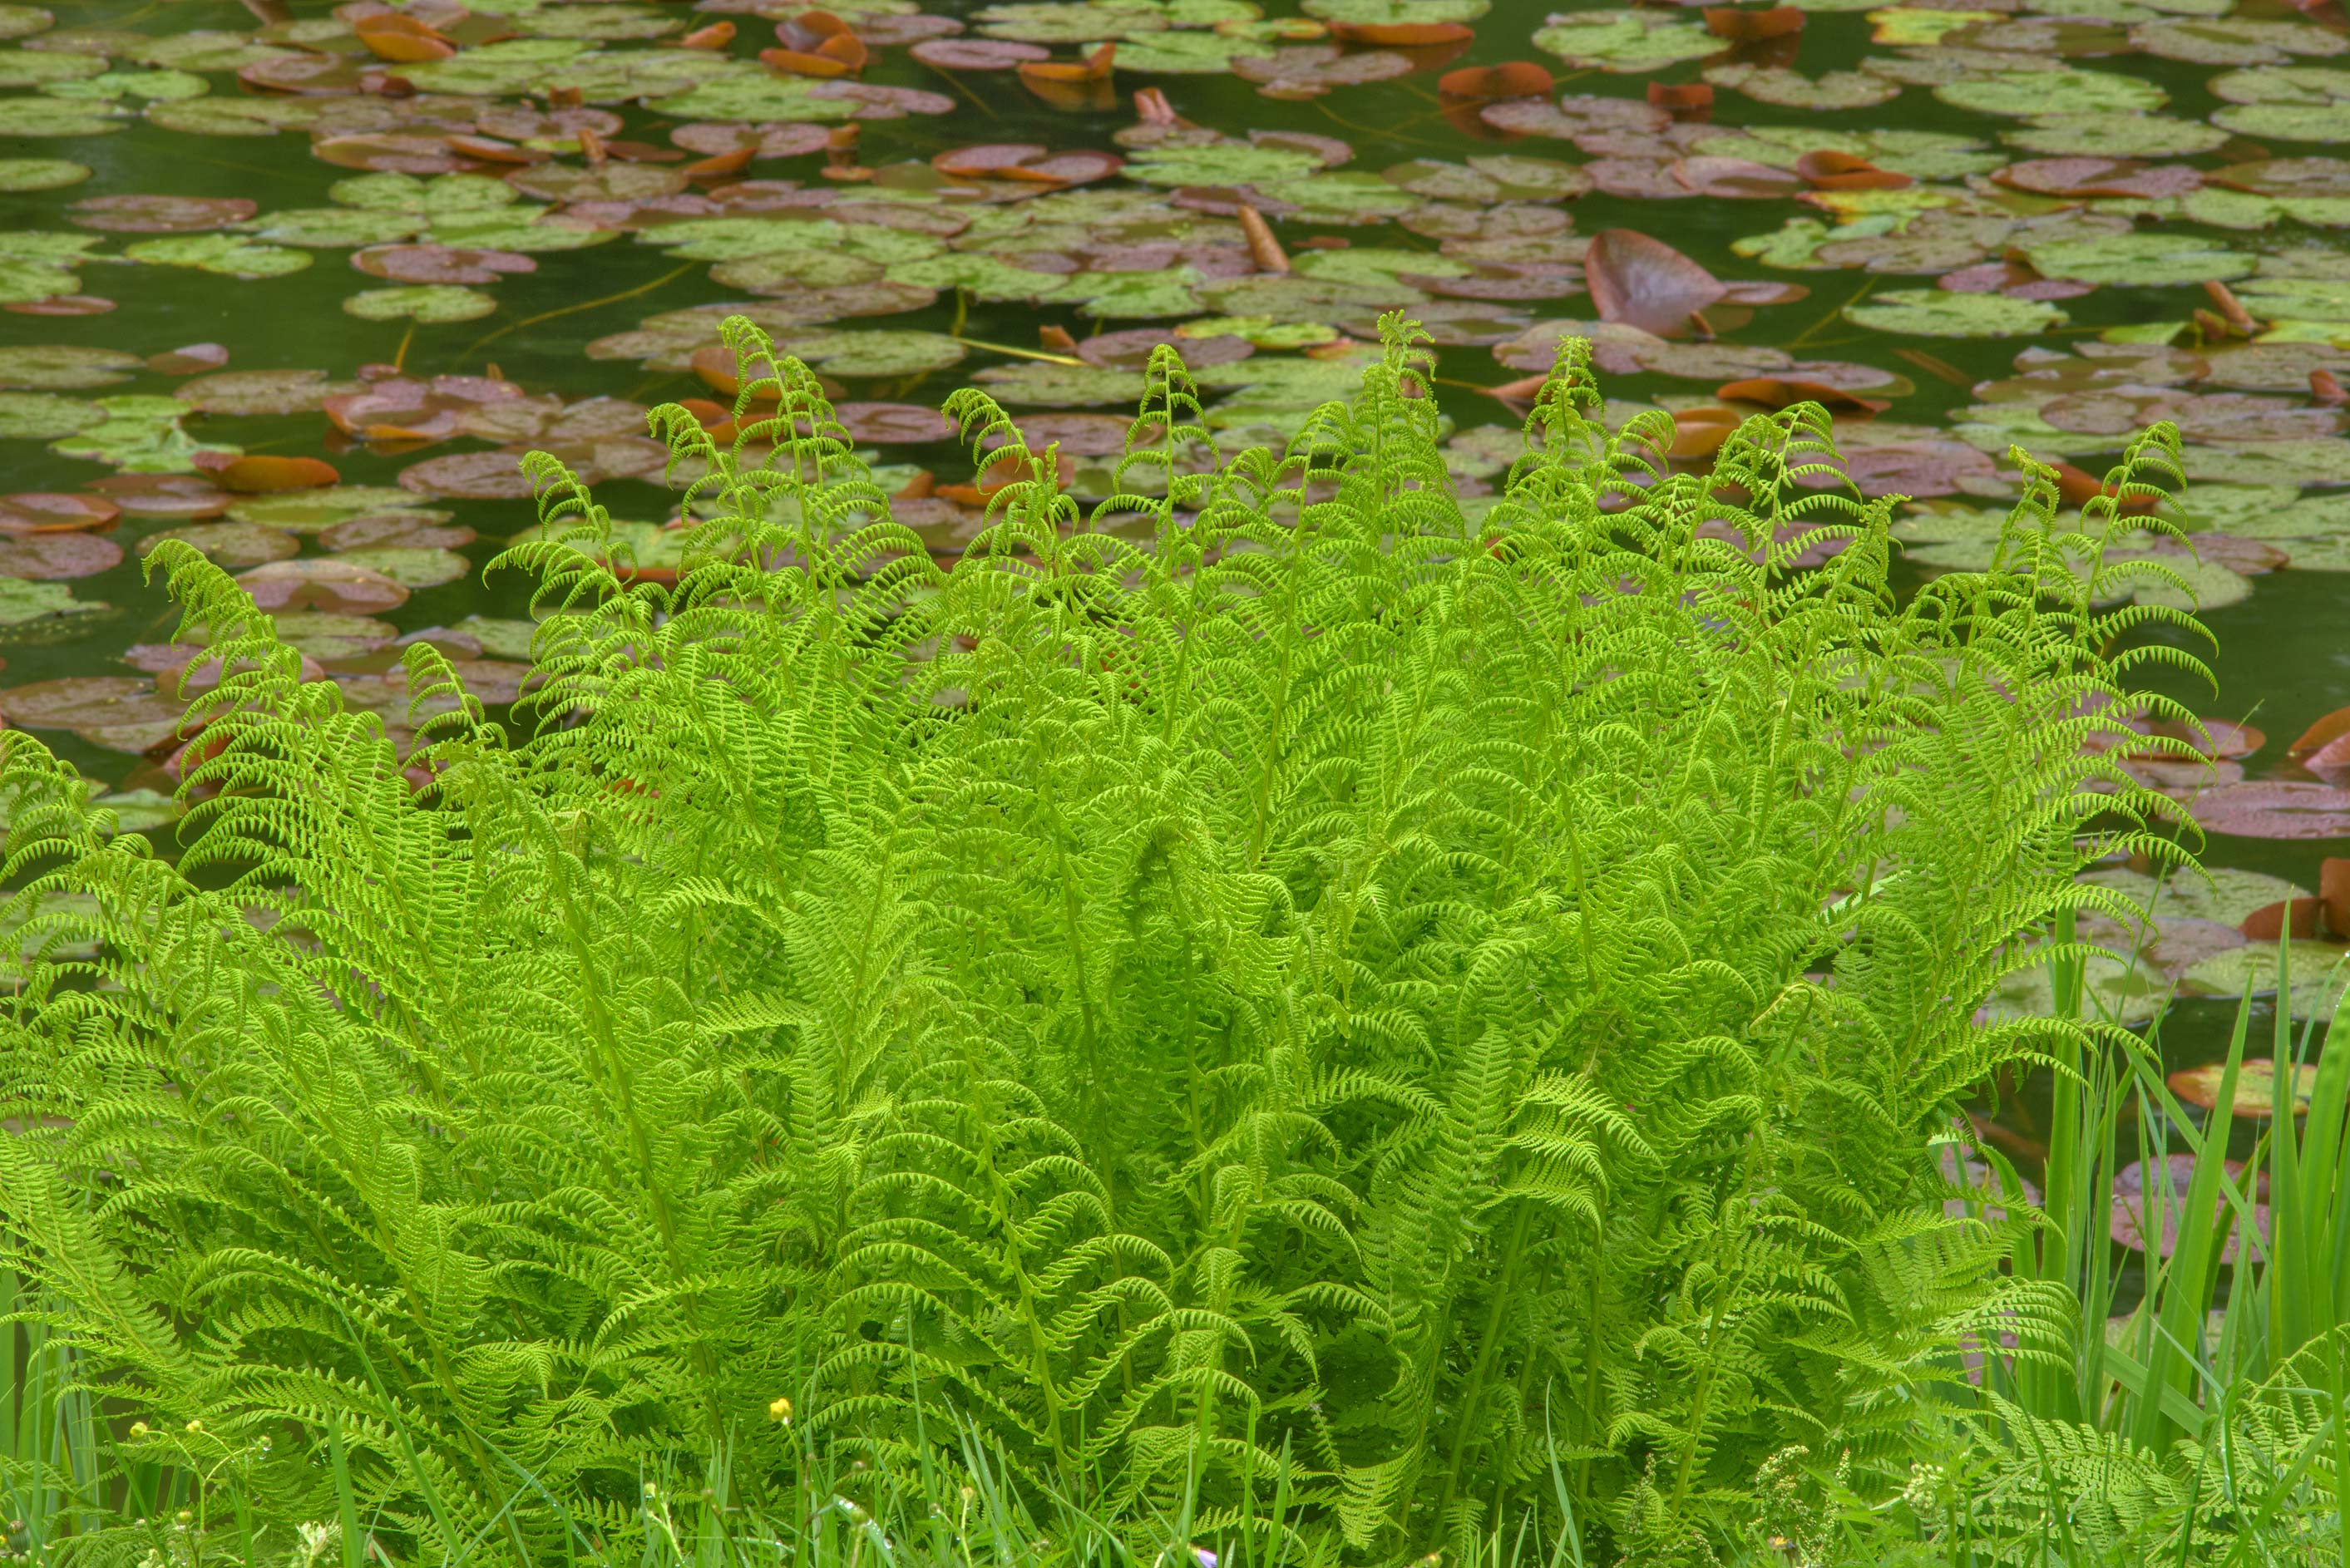 Ferns near a lily pond in Botanic Gardens of...Institute. St.Petersburg, Russia